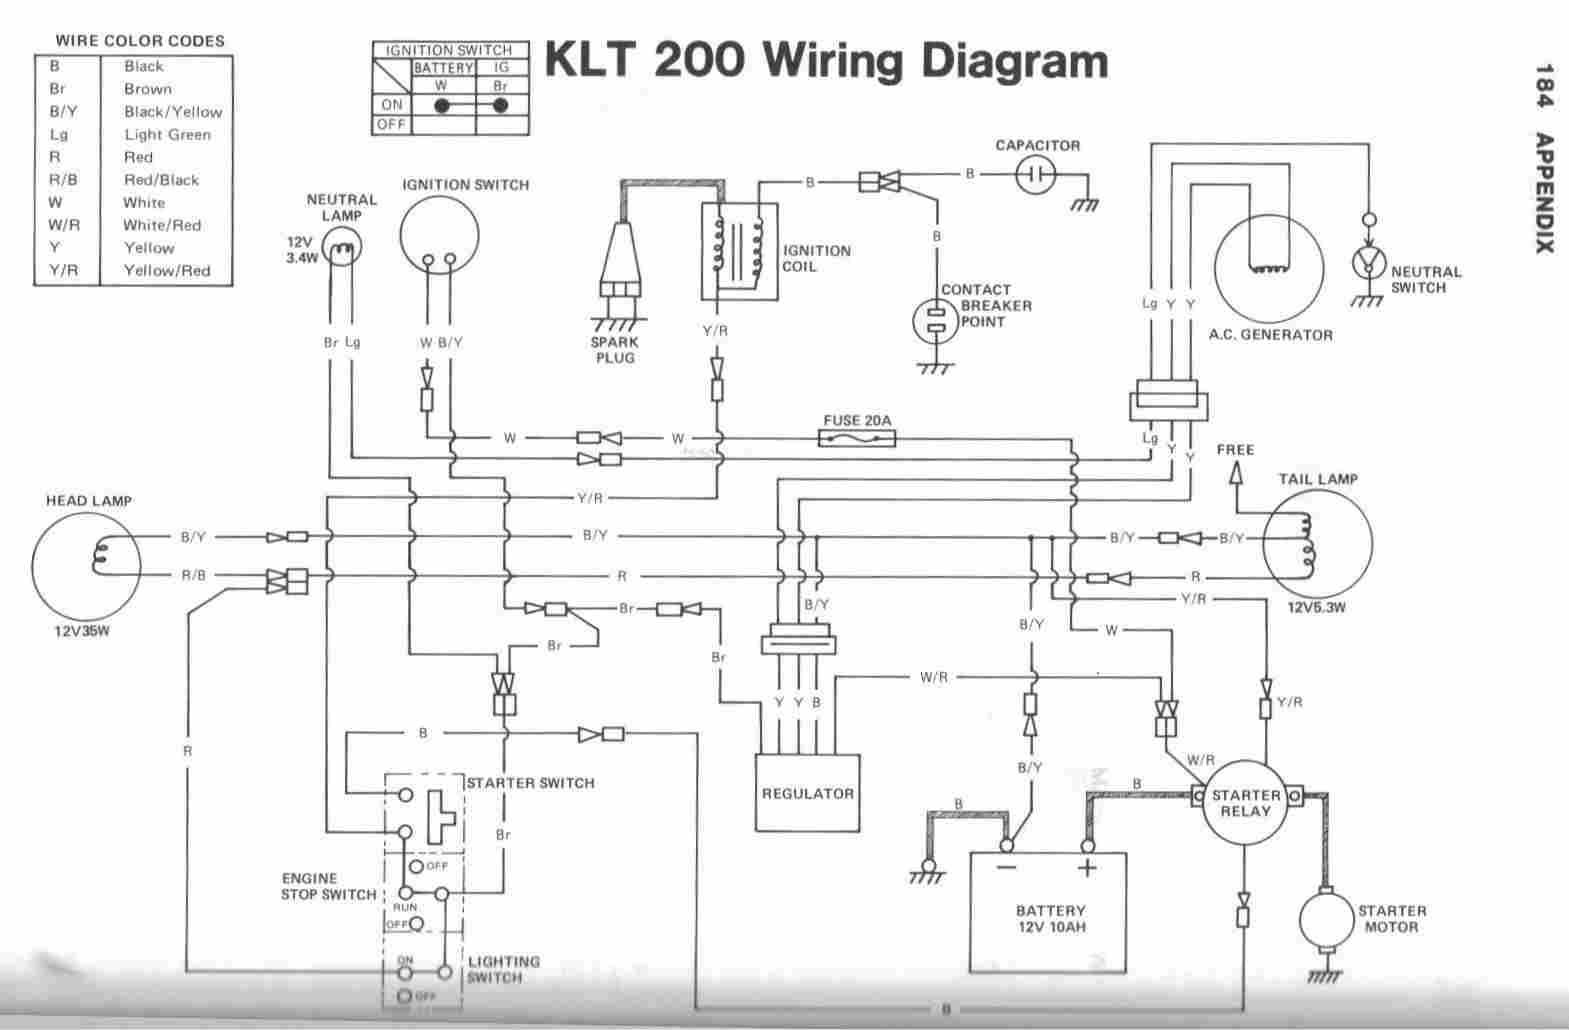 Electric House Wiring Diagram Pdf Archive Of Automotive Generator To Residential Electrical Diagrams Easy Routing A C Home Rh Pinterest Com